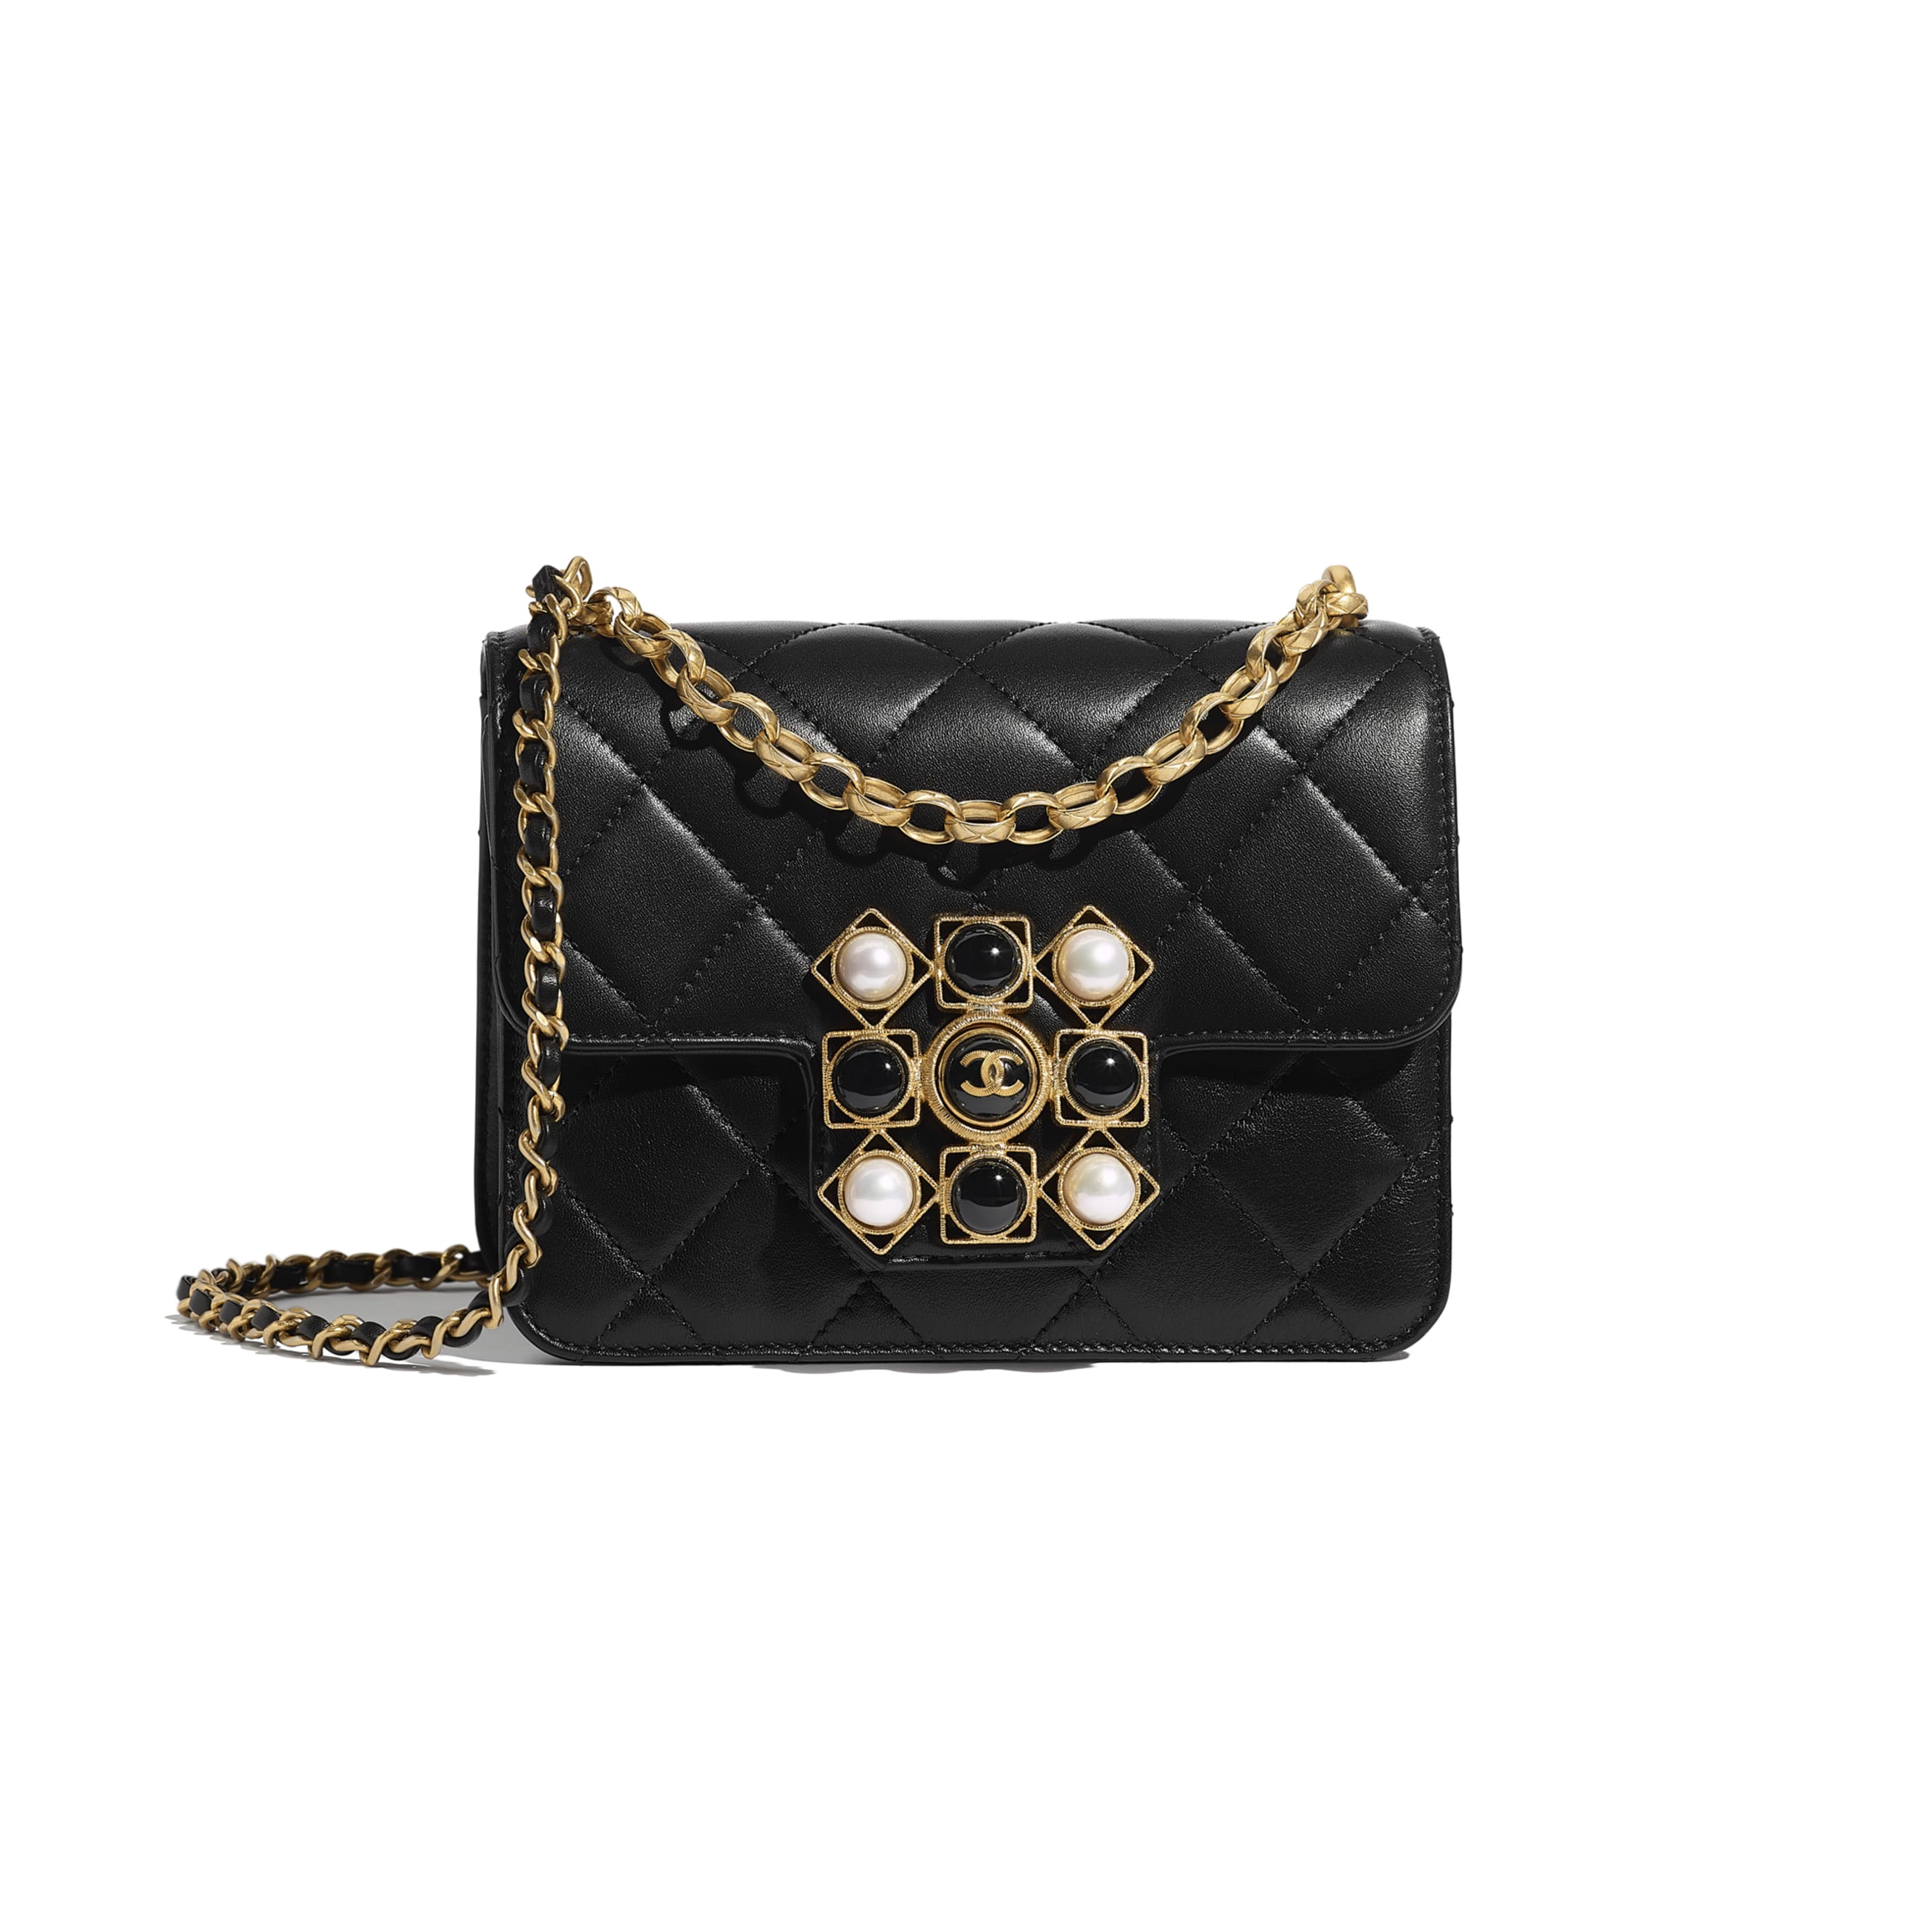 Flap Bag - Black - Calfskin, Onyx, Pearls & Gold-Tone Metal - CHANEL - Default view - see standard sized version